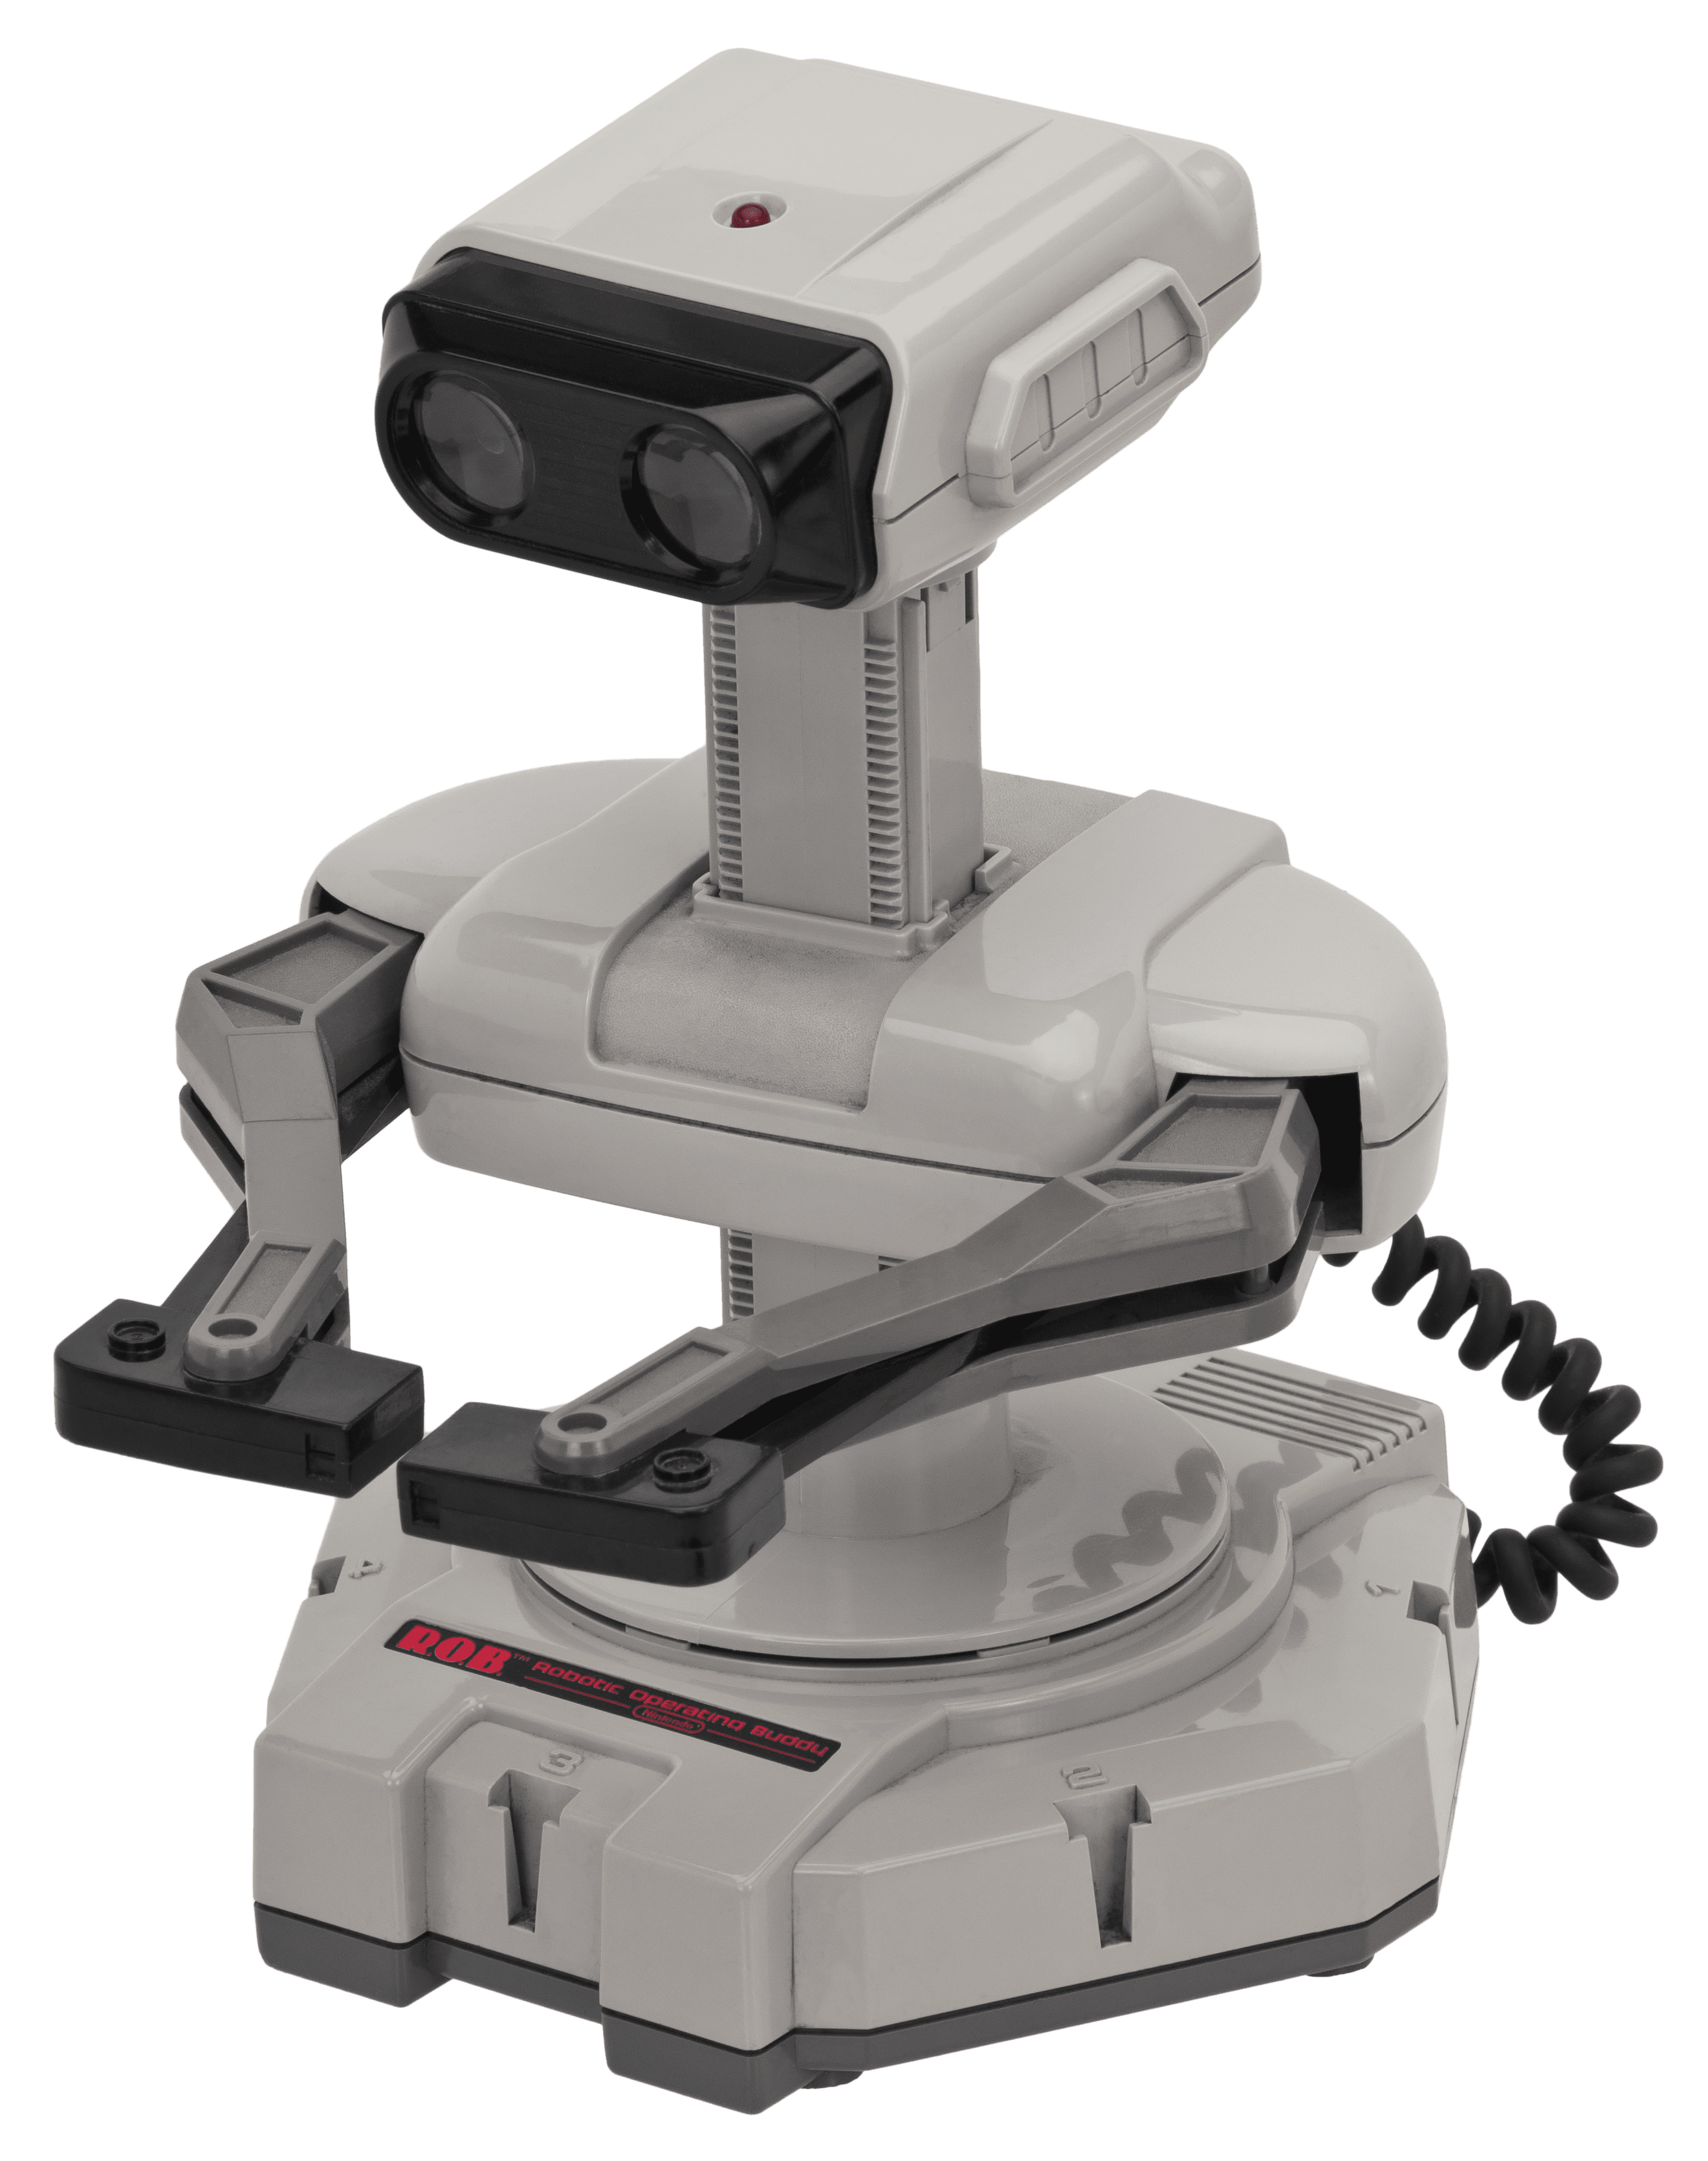 nes-rob-png.43444